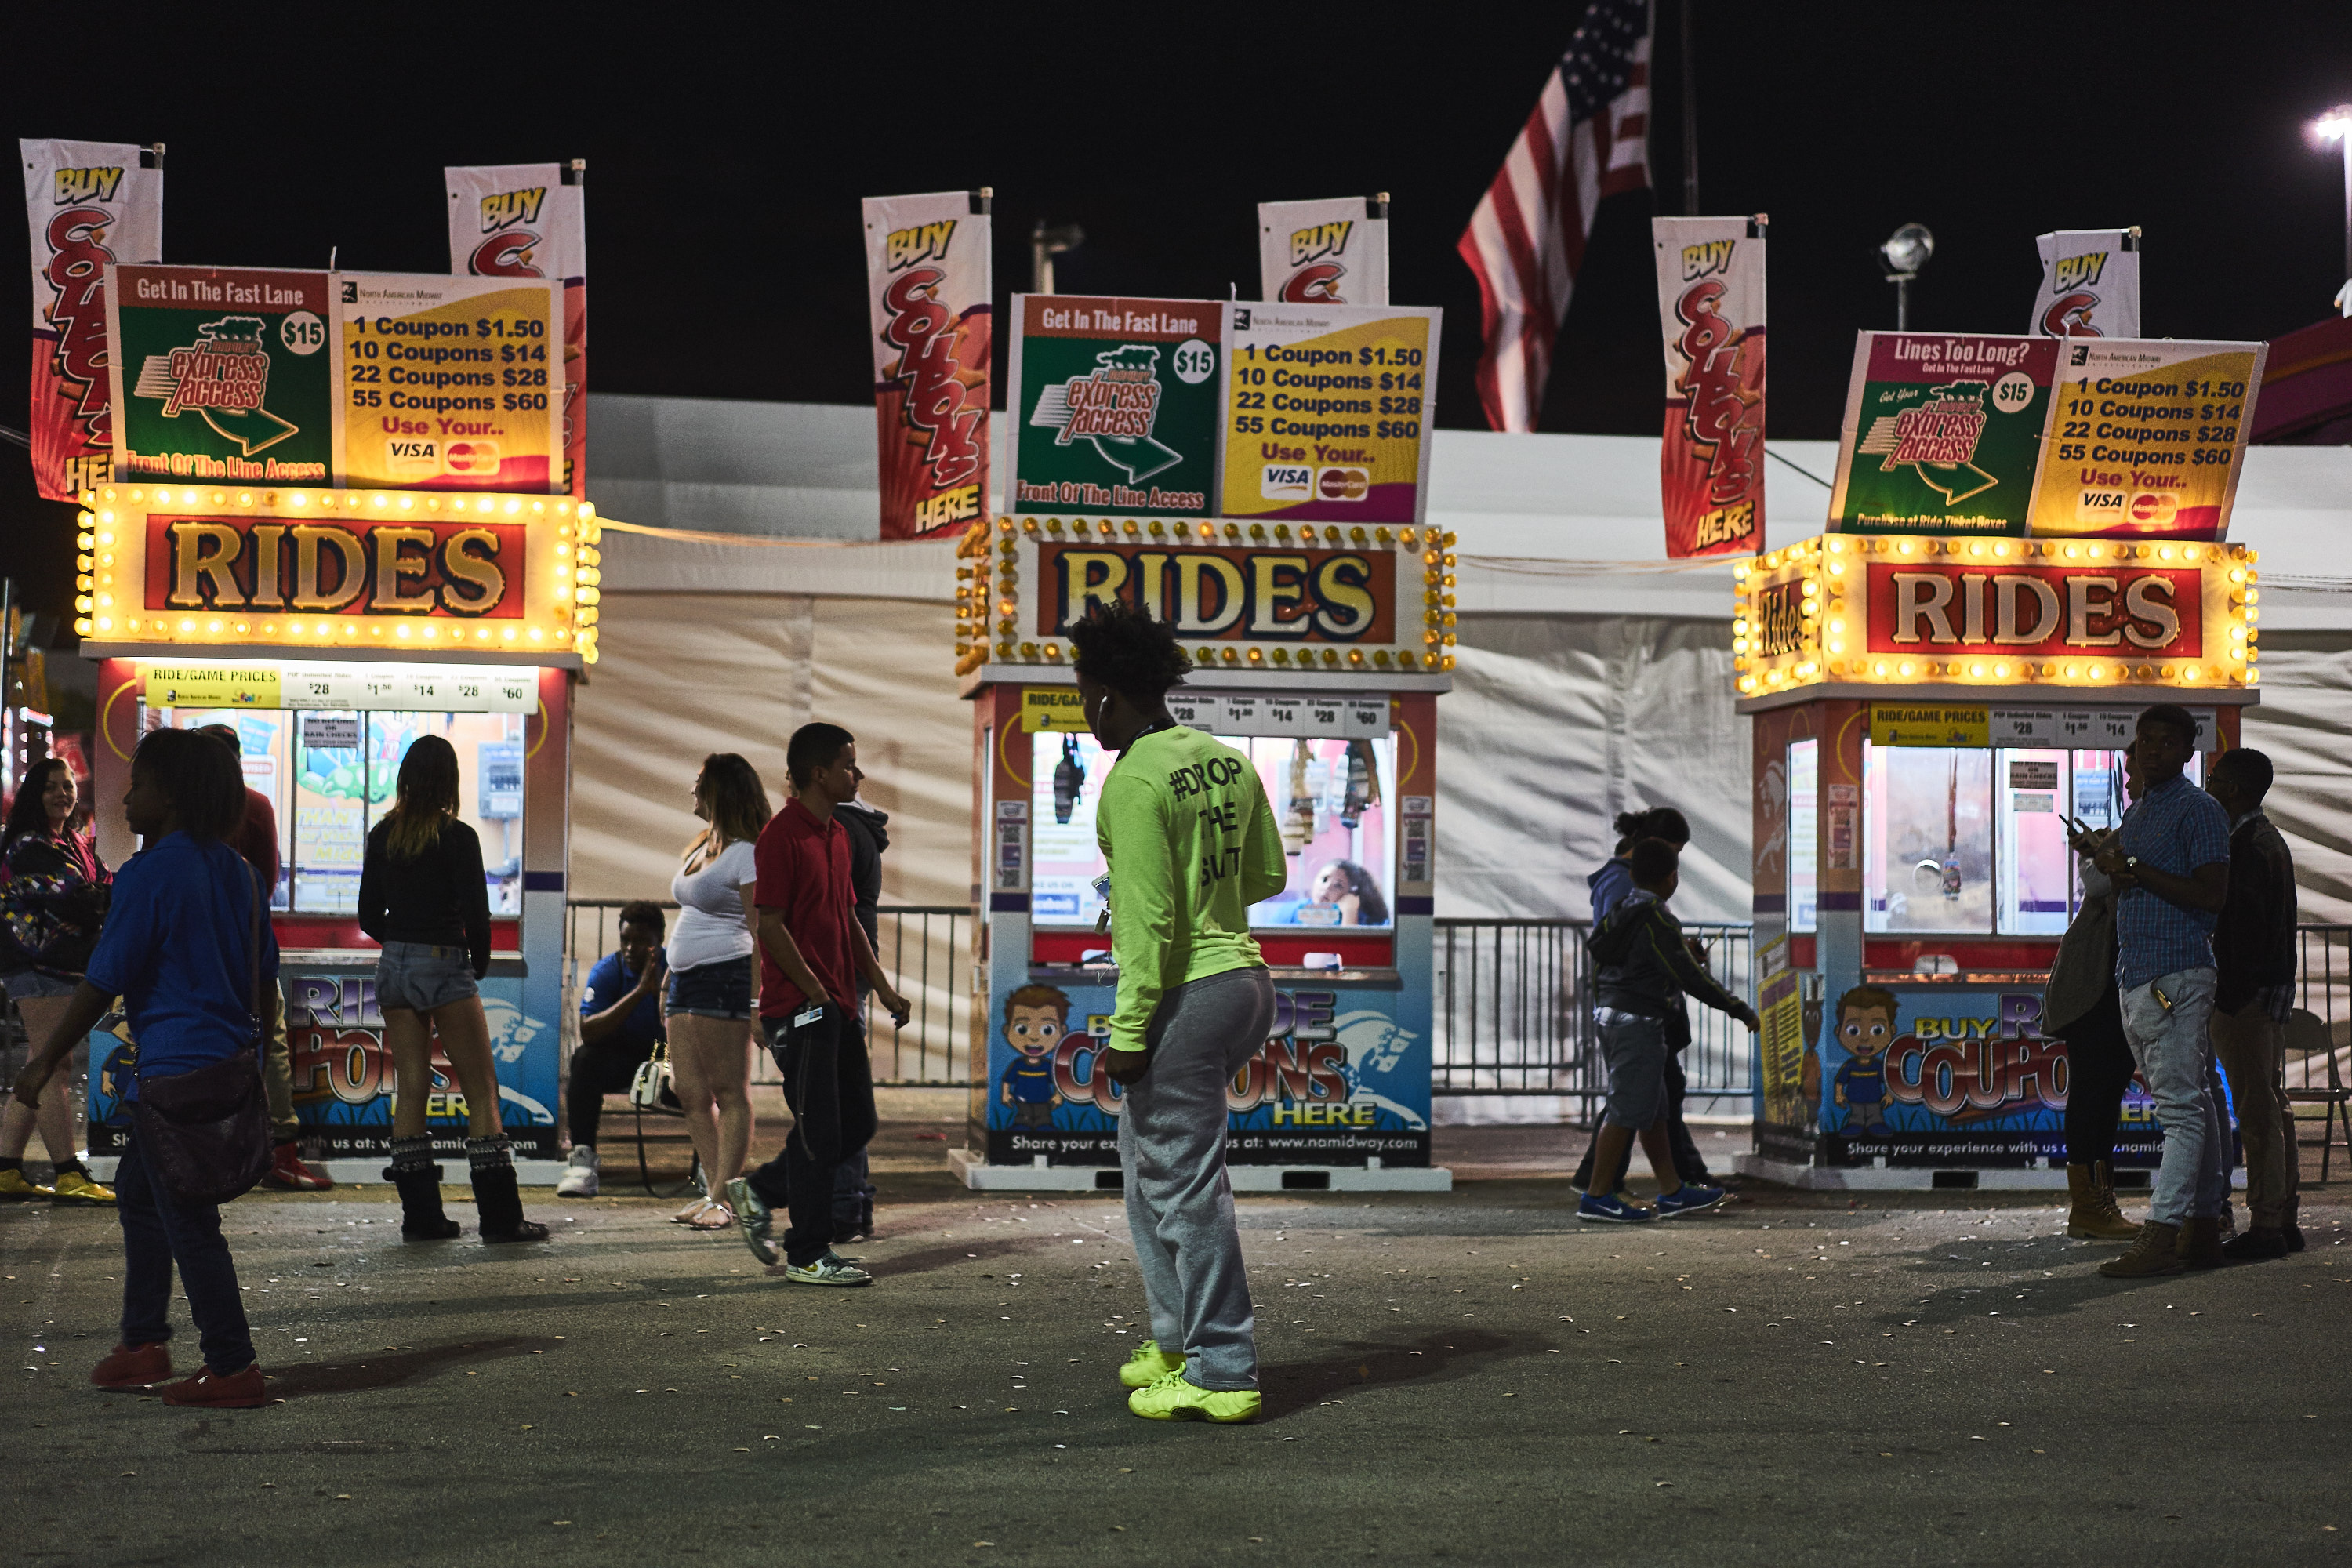 Miami_Dade_County_Youth_Fair_2016_wordintown_jayromero_photography_copyrights_15